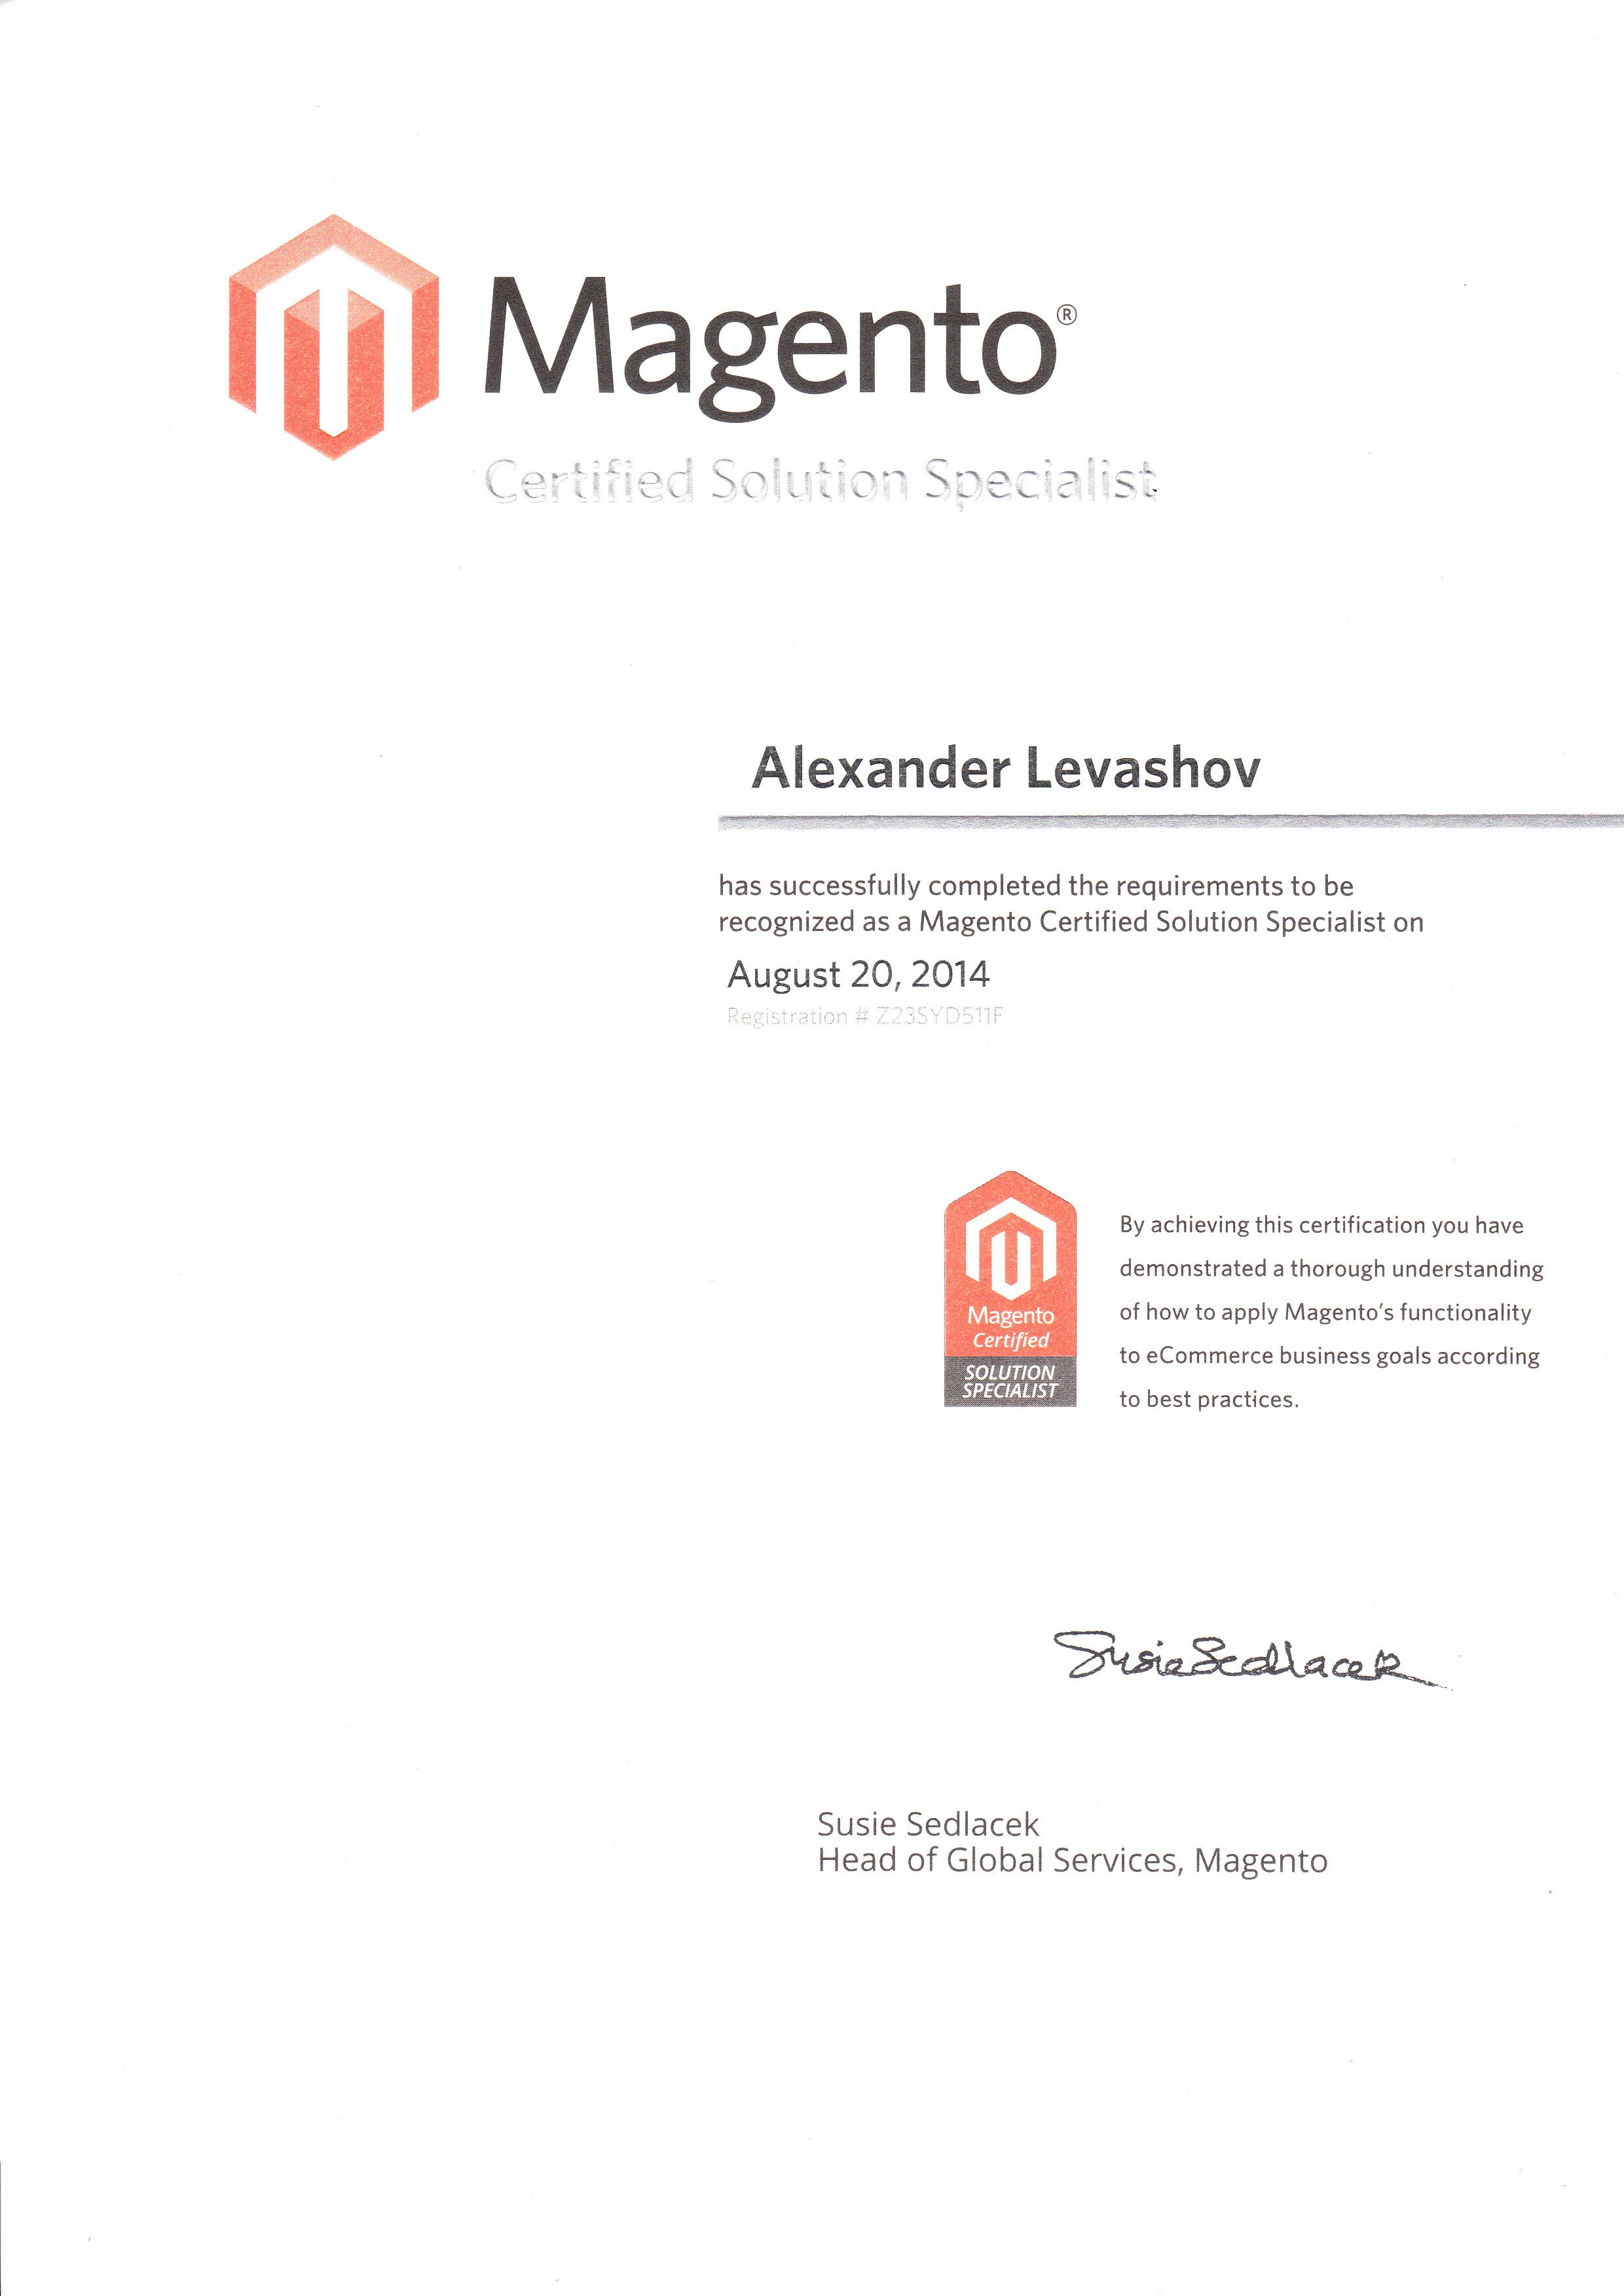 Magento certified solution specialist certificate alex levashov magento certified solution specialist certificate alex levashov ecommerce consultant melbourne australia 1betcityfo Choice Image